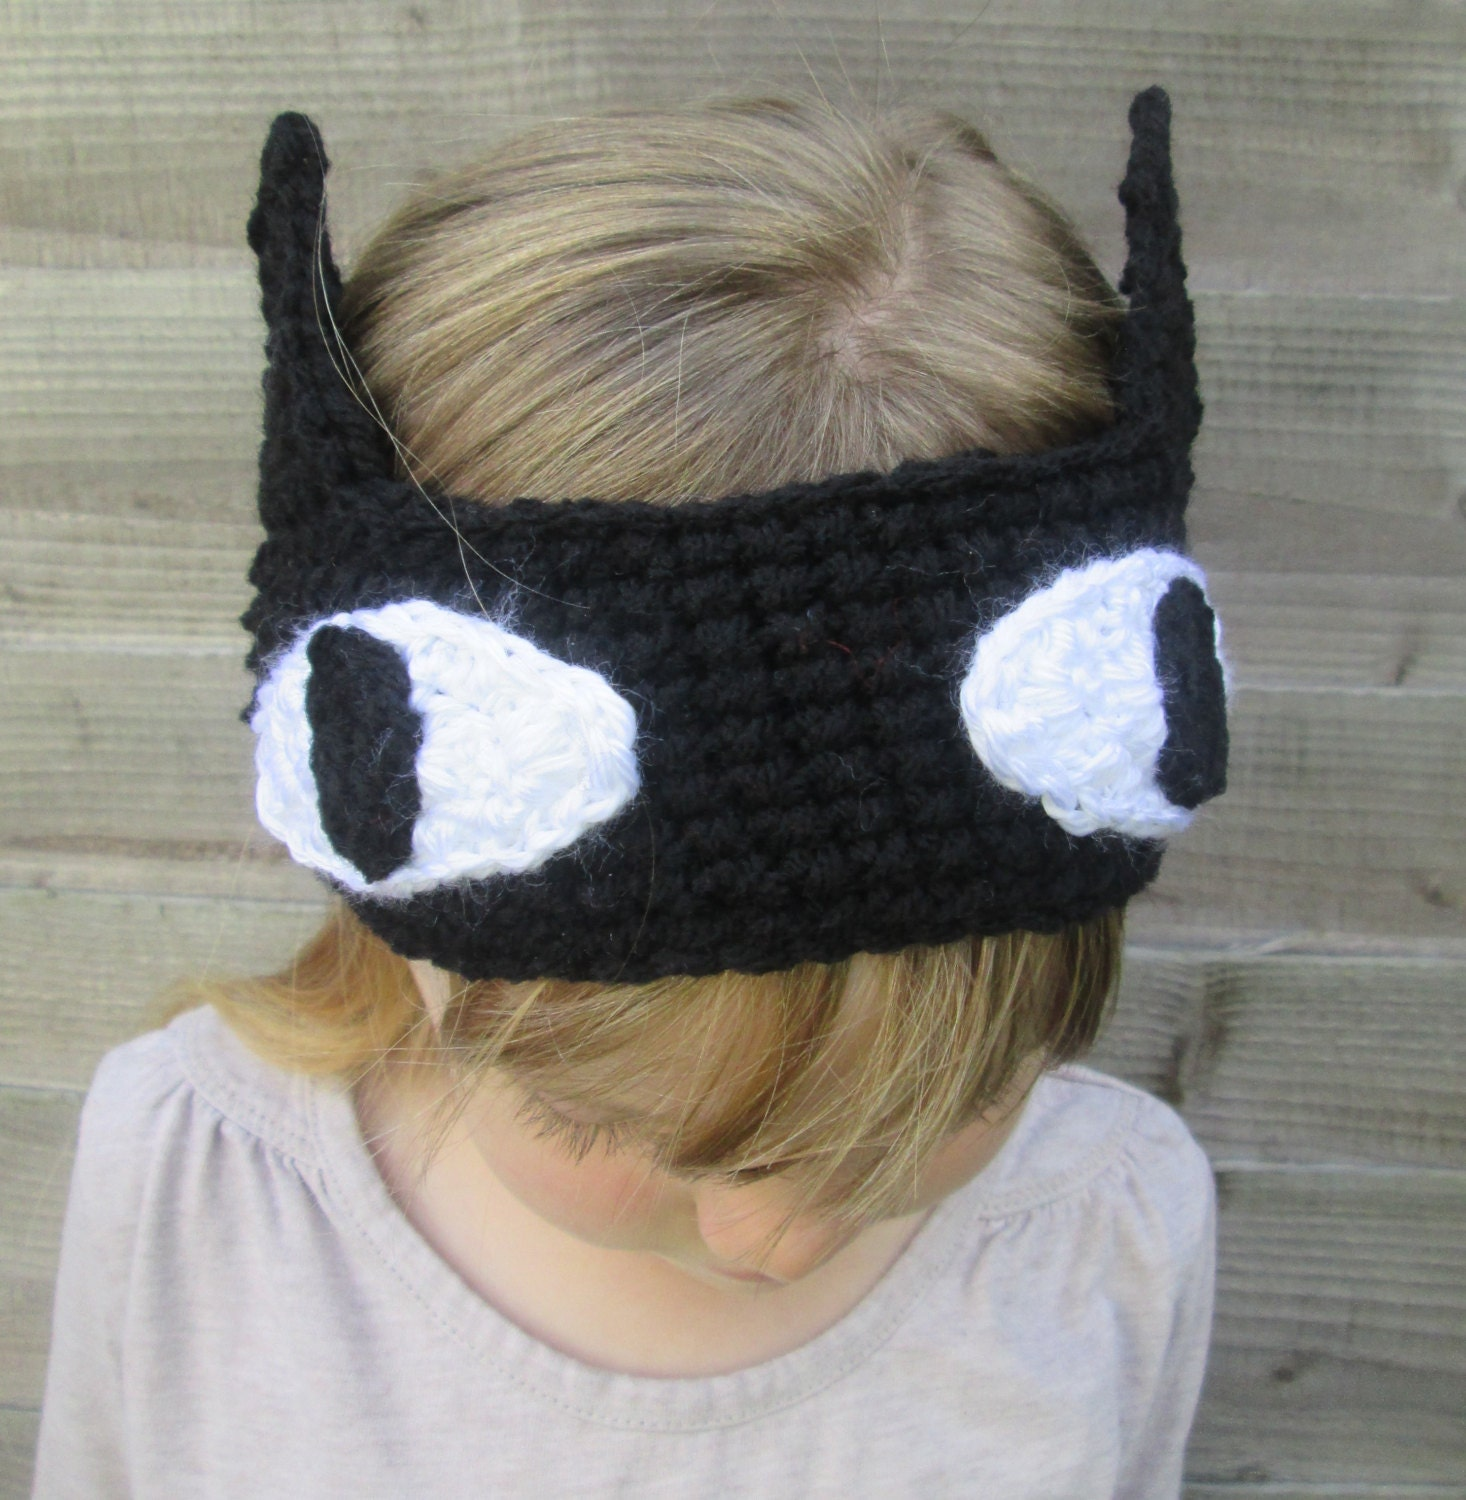 Crochet Cat Headband Pattern - A Free Crochet Pattern | Cat headband, Crochet  headband, Headband pattern | 1500x1466